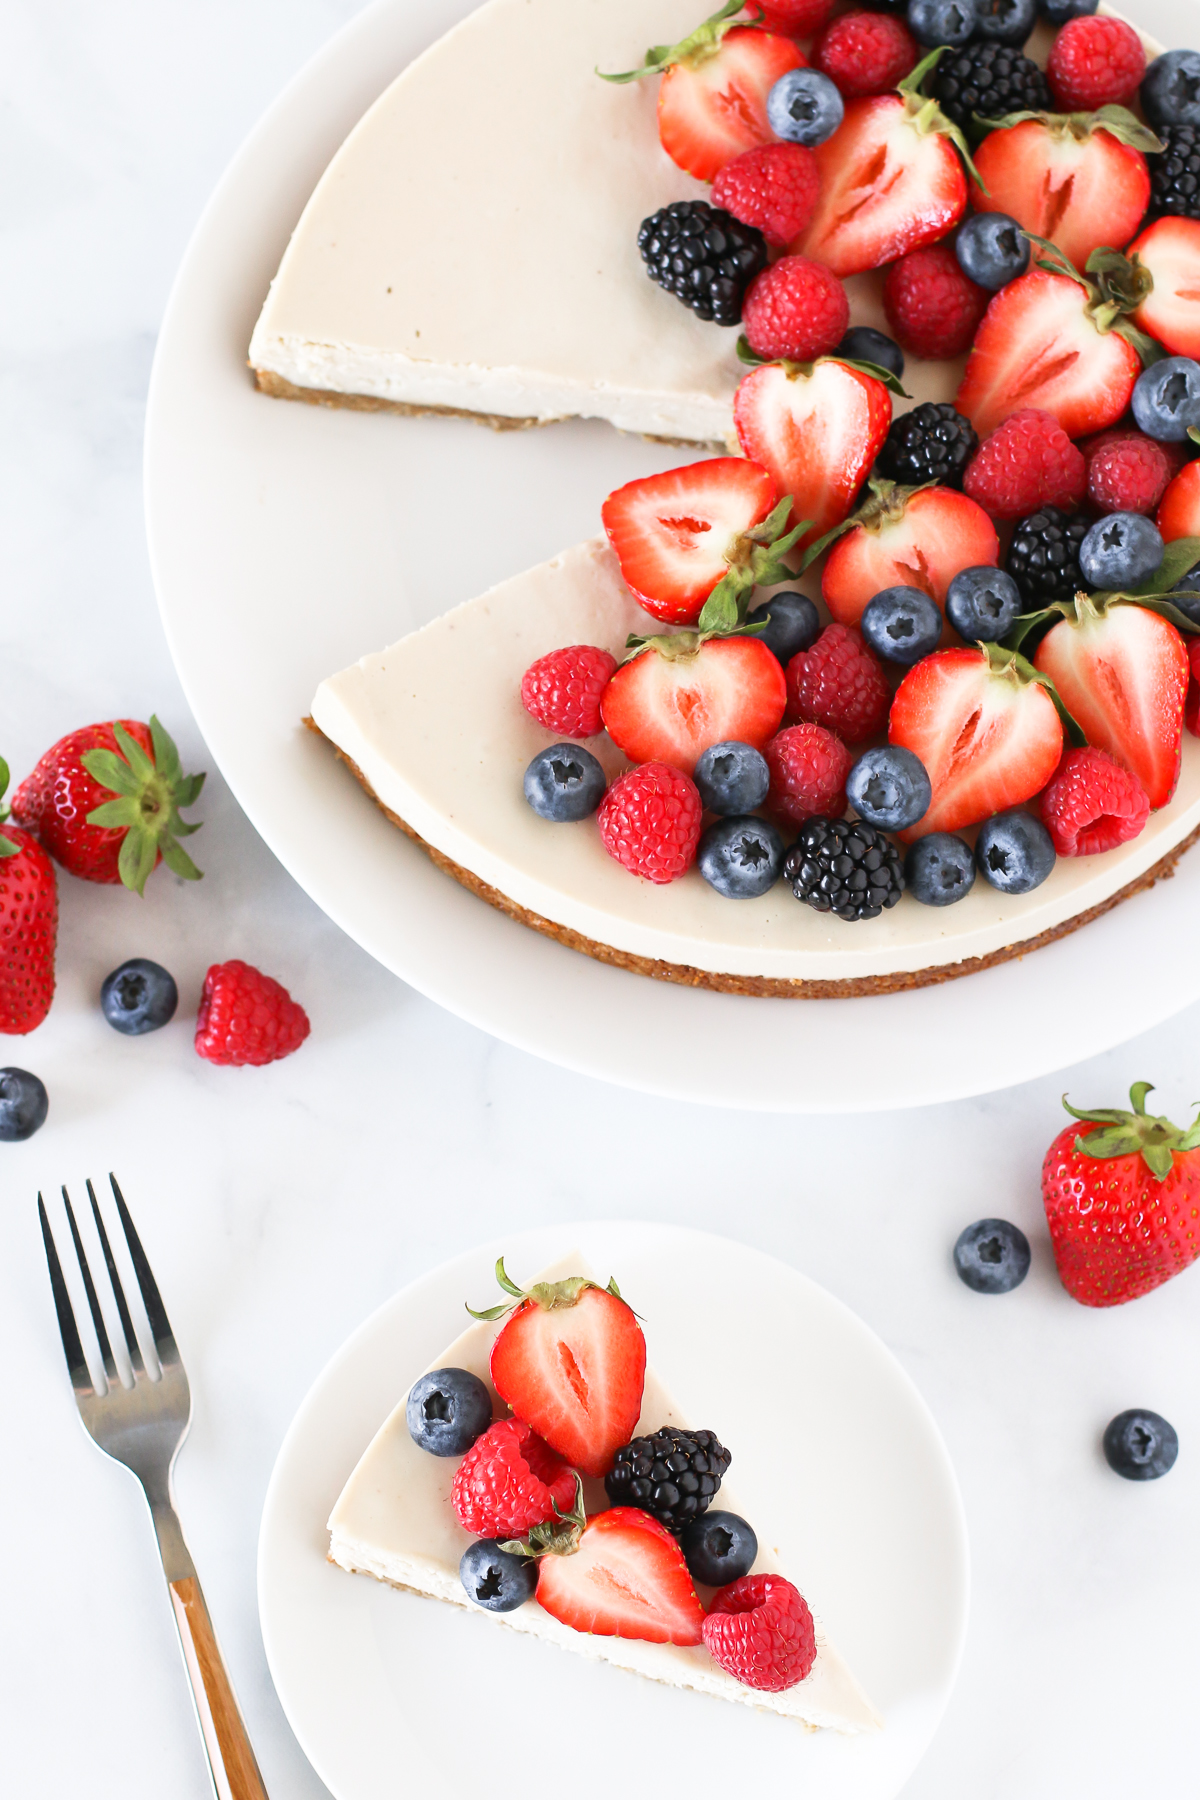 Gluten Free Vegan Berry Cheesecake. You will go head over heals for this dairy free cheesecake! Made with cashews, the creamy texture is perfectly paired with the fresh berries.